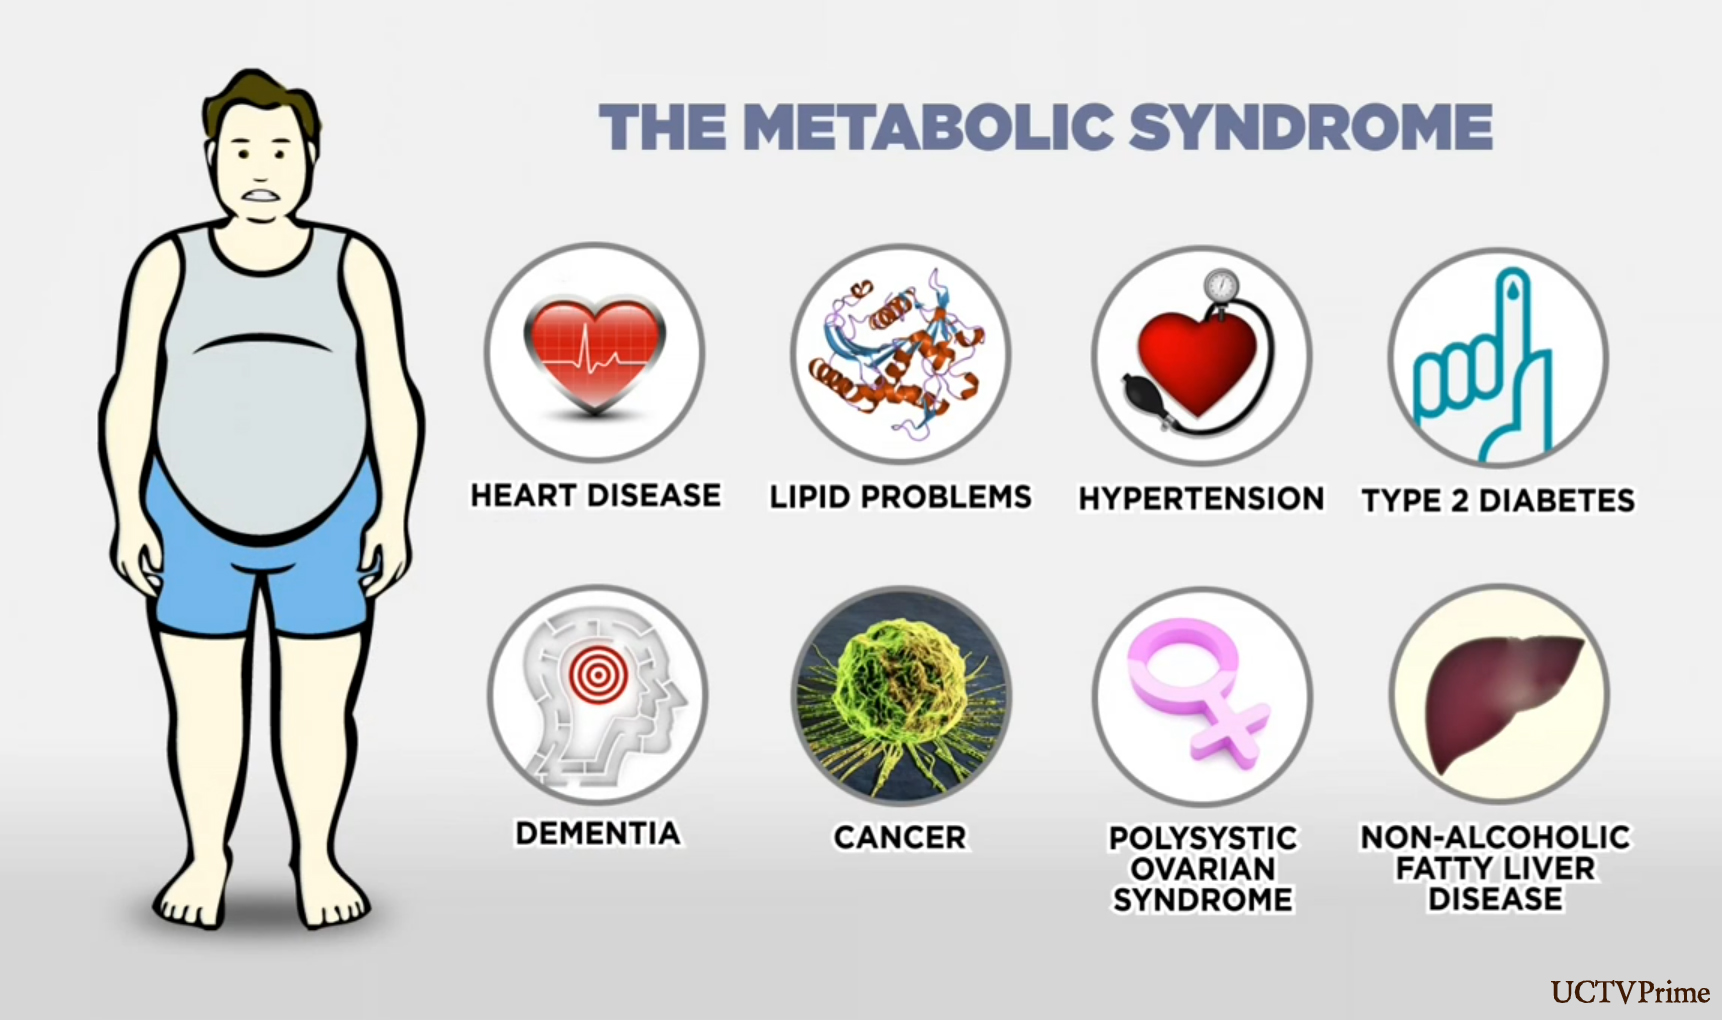 How Obesity, High Cholesterol, and Metabolic Syndrome Are Related